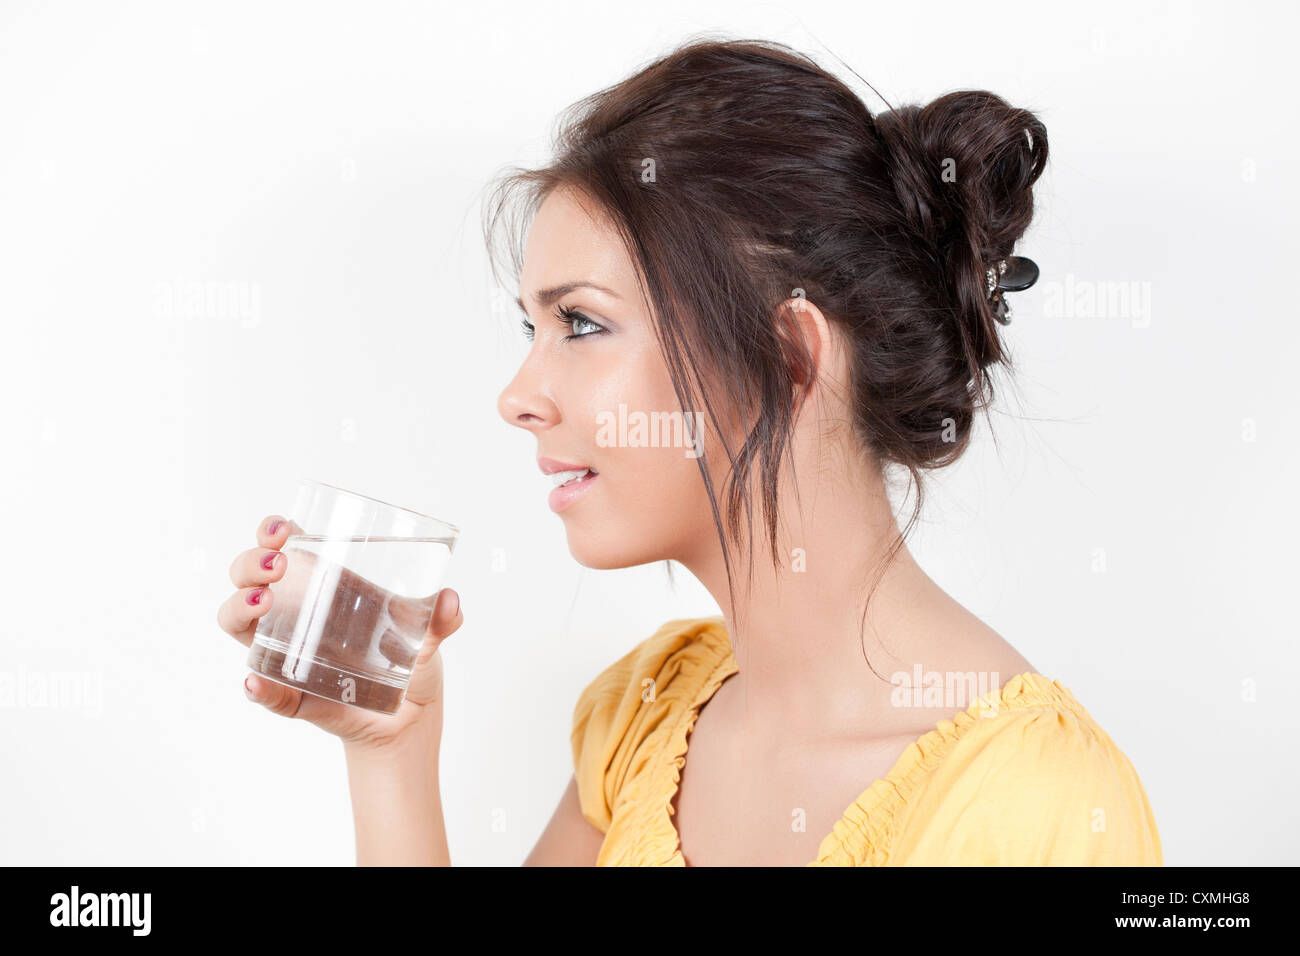 Woman drinking water from a glass - Stock Image